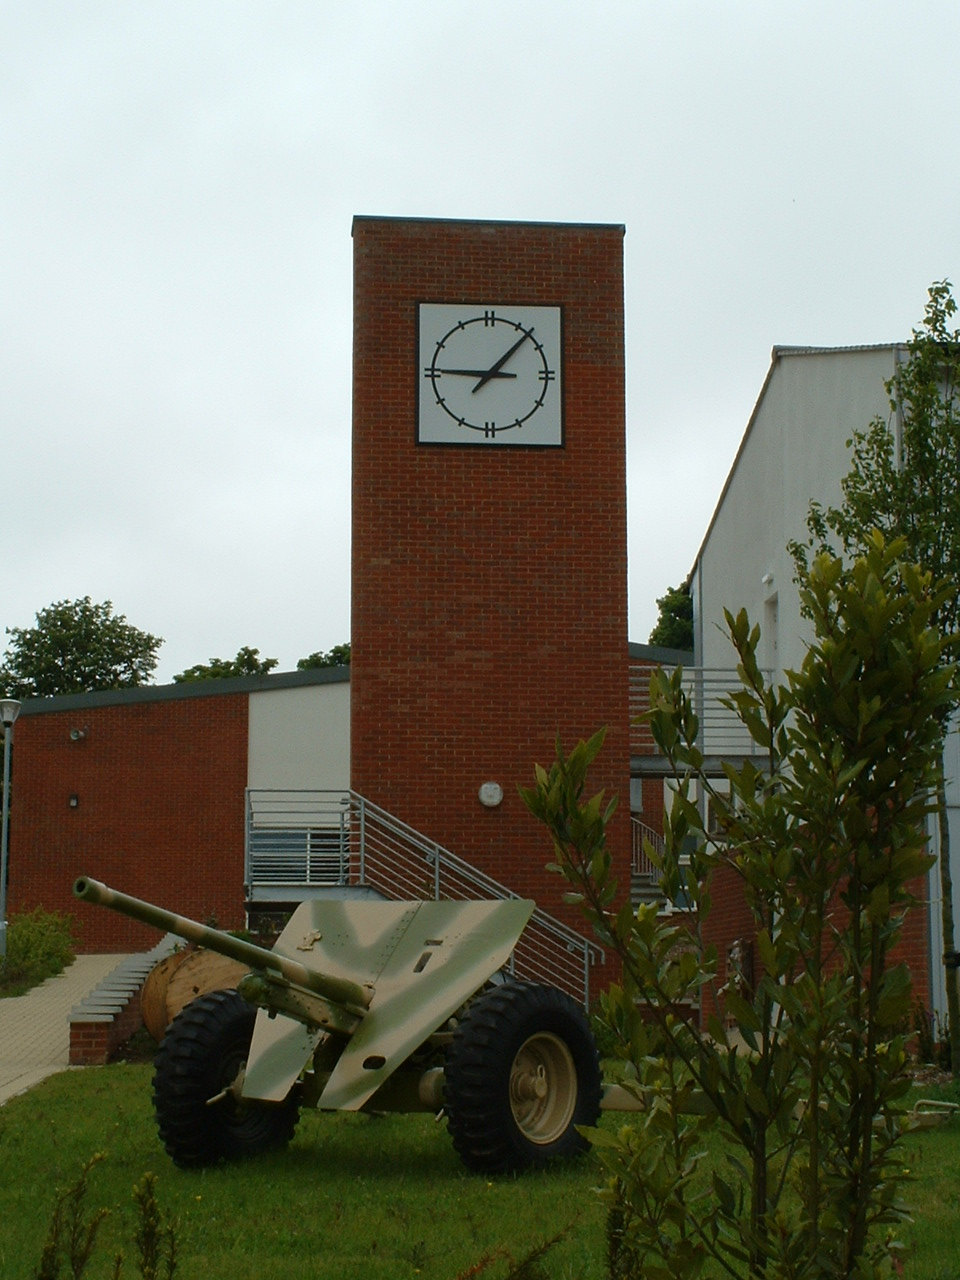 Barracks clock